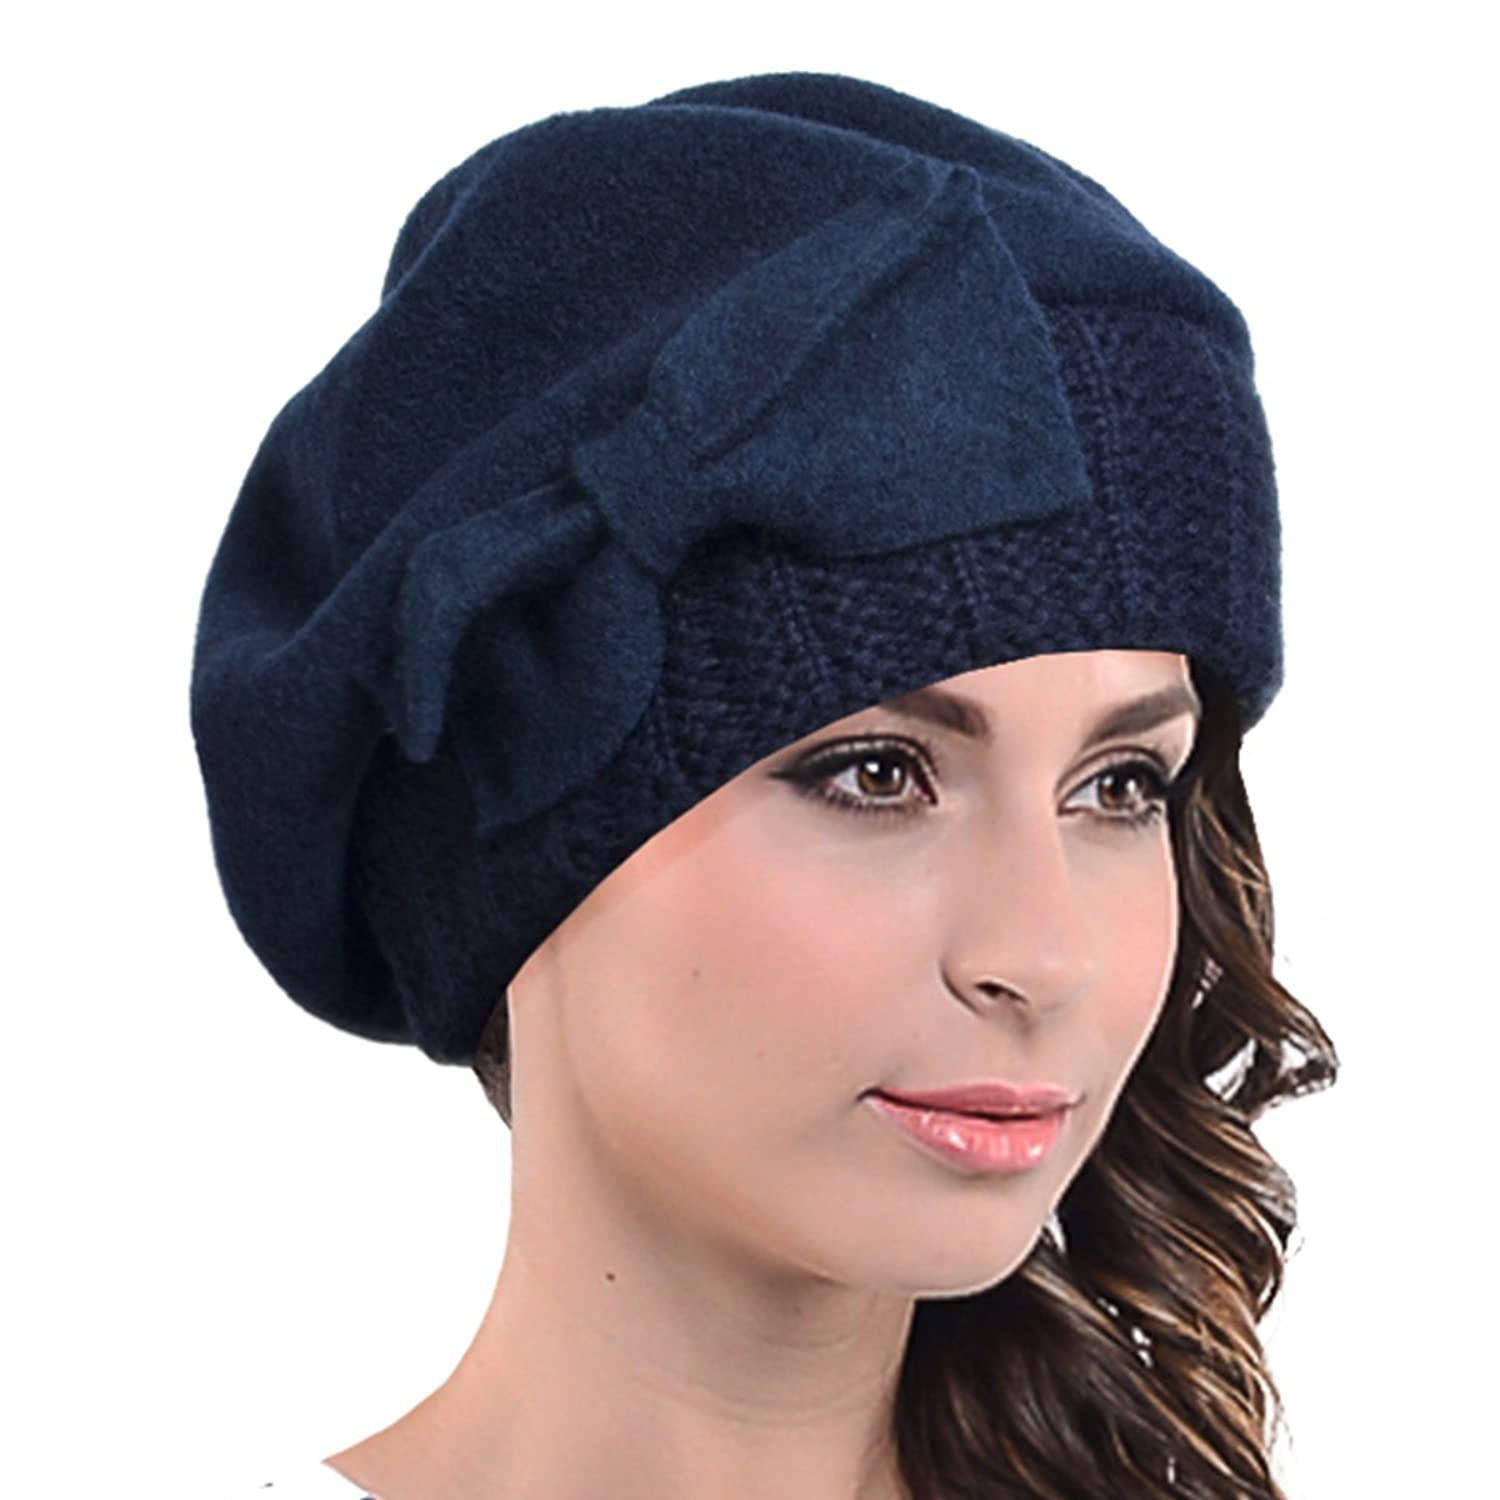 1940s Hats History Lady French Beret Wool Beret Chic Beanie Winter Hat  Jf-br034  21.99 72b3dfd3f22